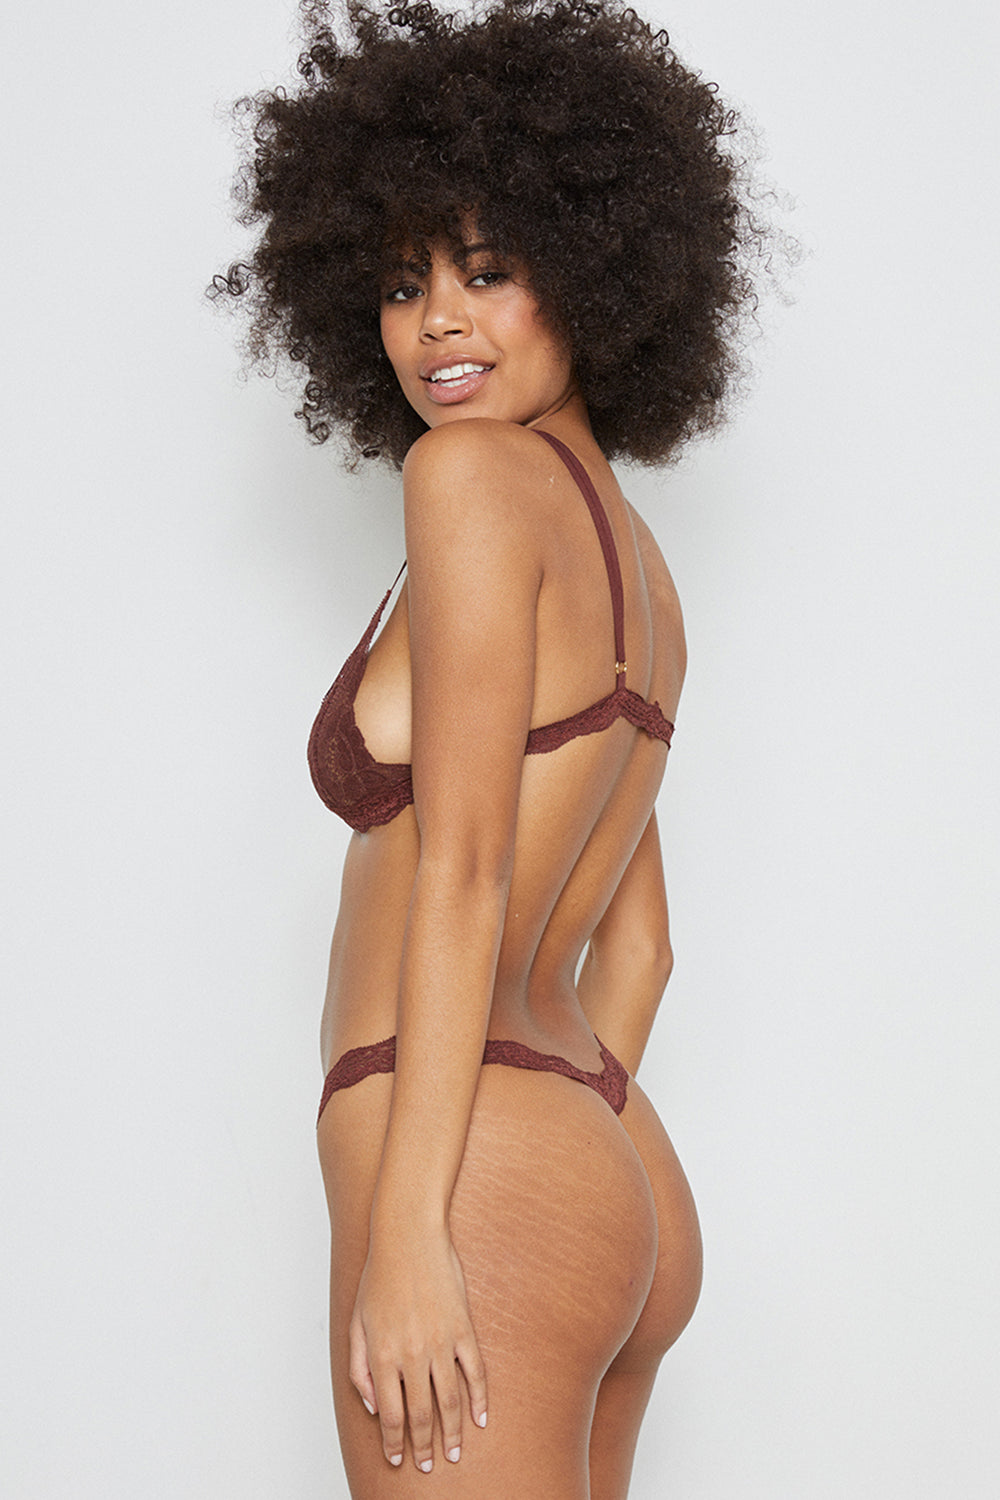 Brown lace thong panty machine washable eco-friendly